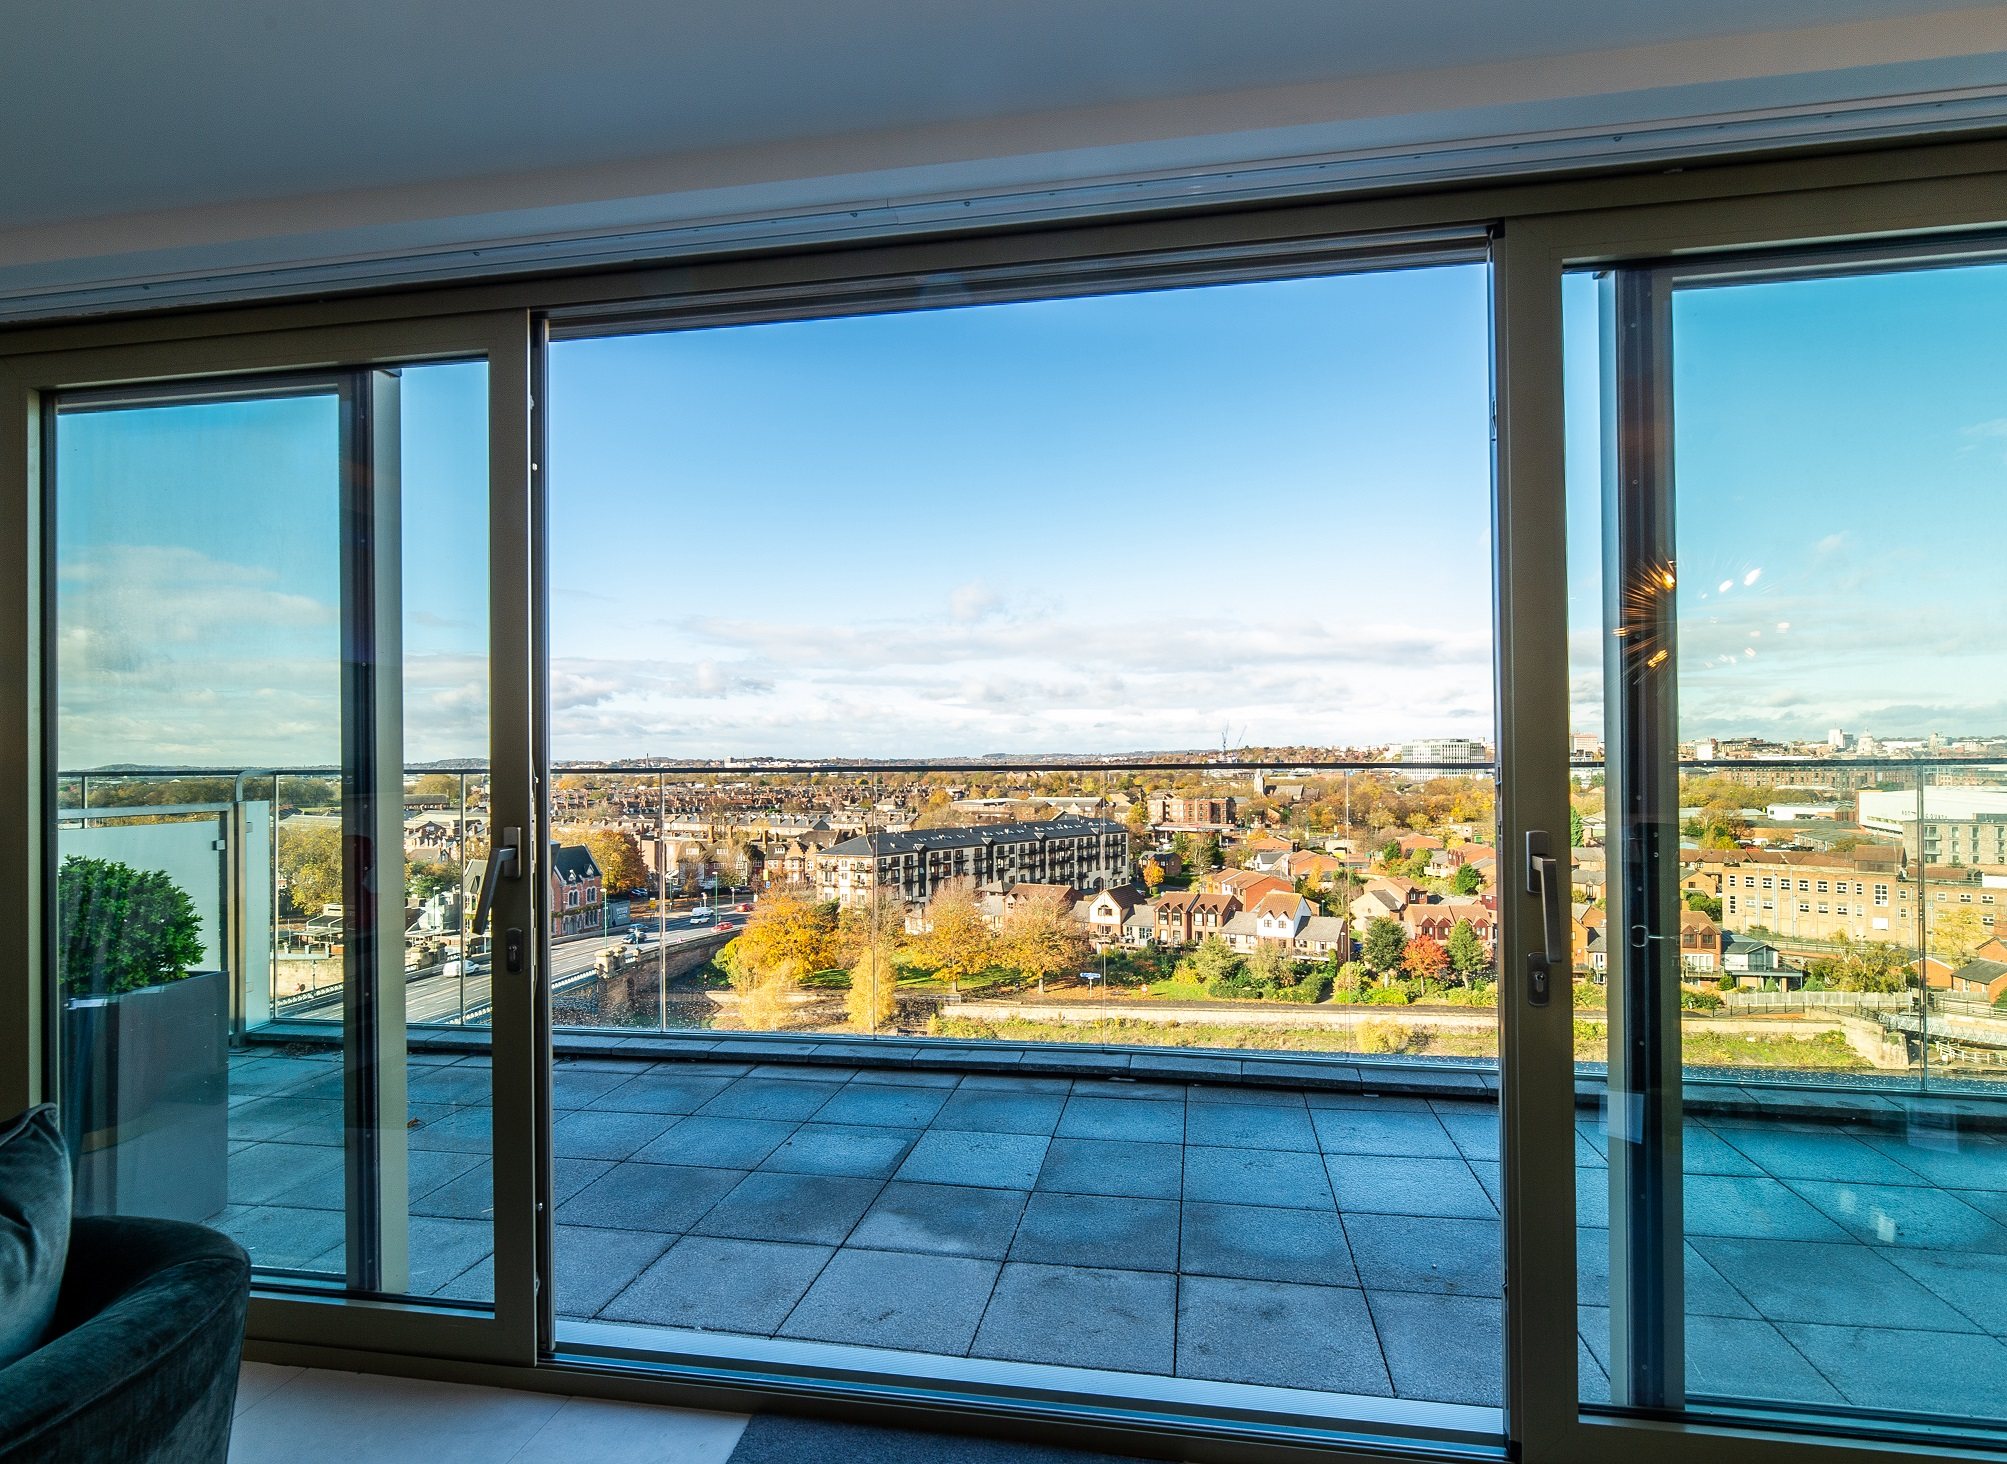 Waterside penthouse day views